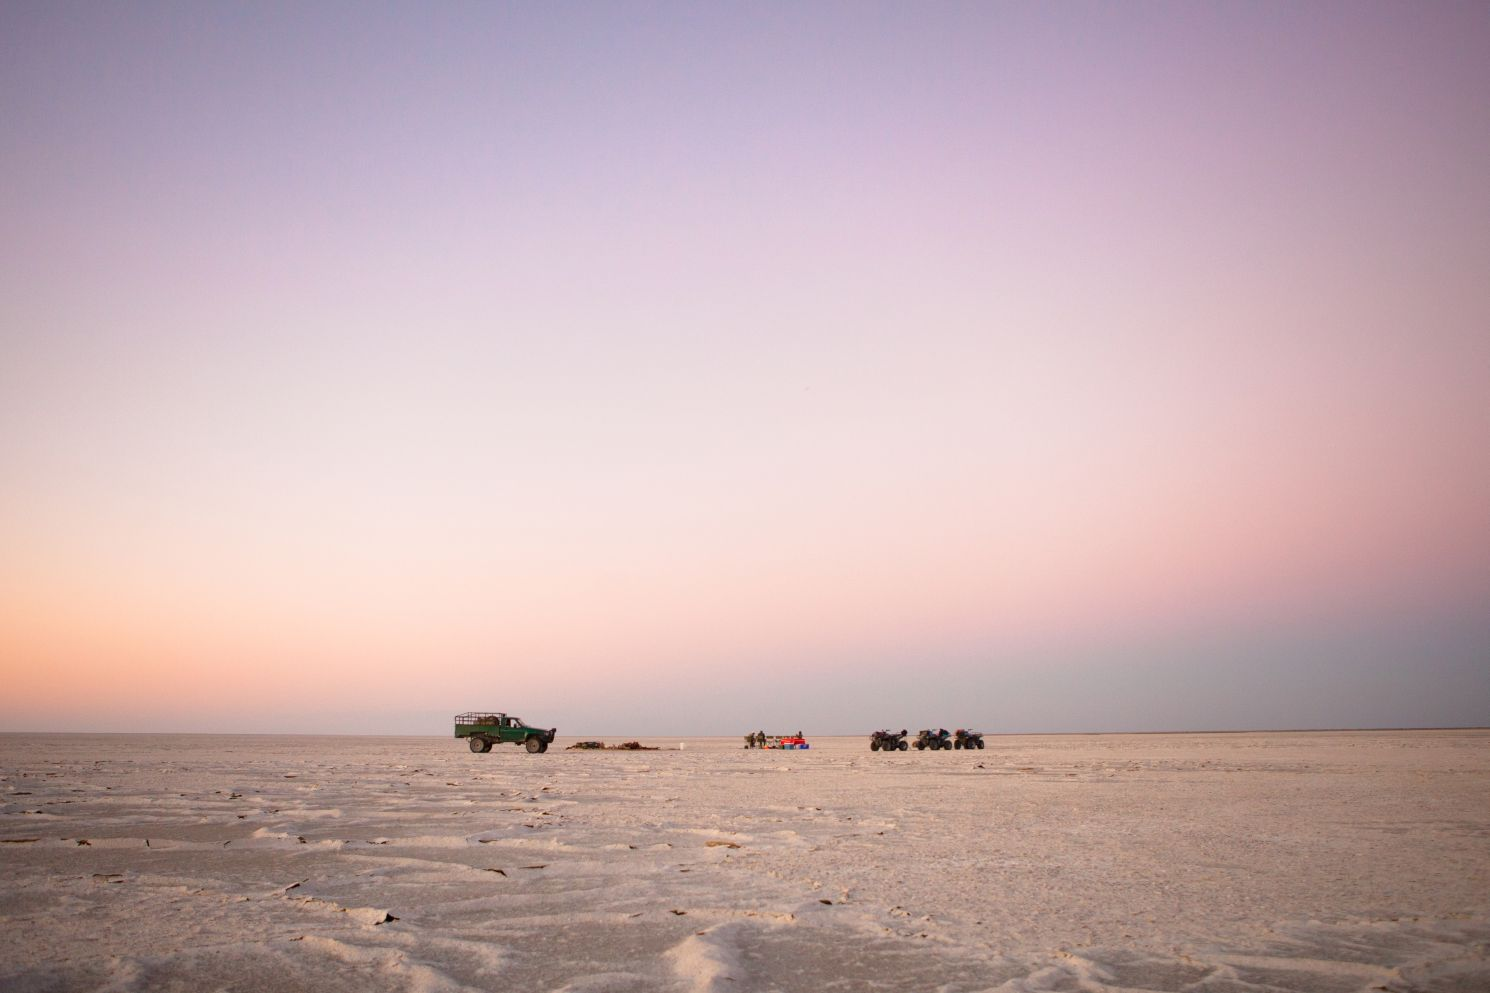 Desert & Delta Safaris now offers intrepid travelers the chance to spend the night out under the stars in Botswana's acclaimed Makgadikgadi Salt Pan.